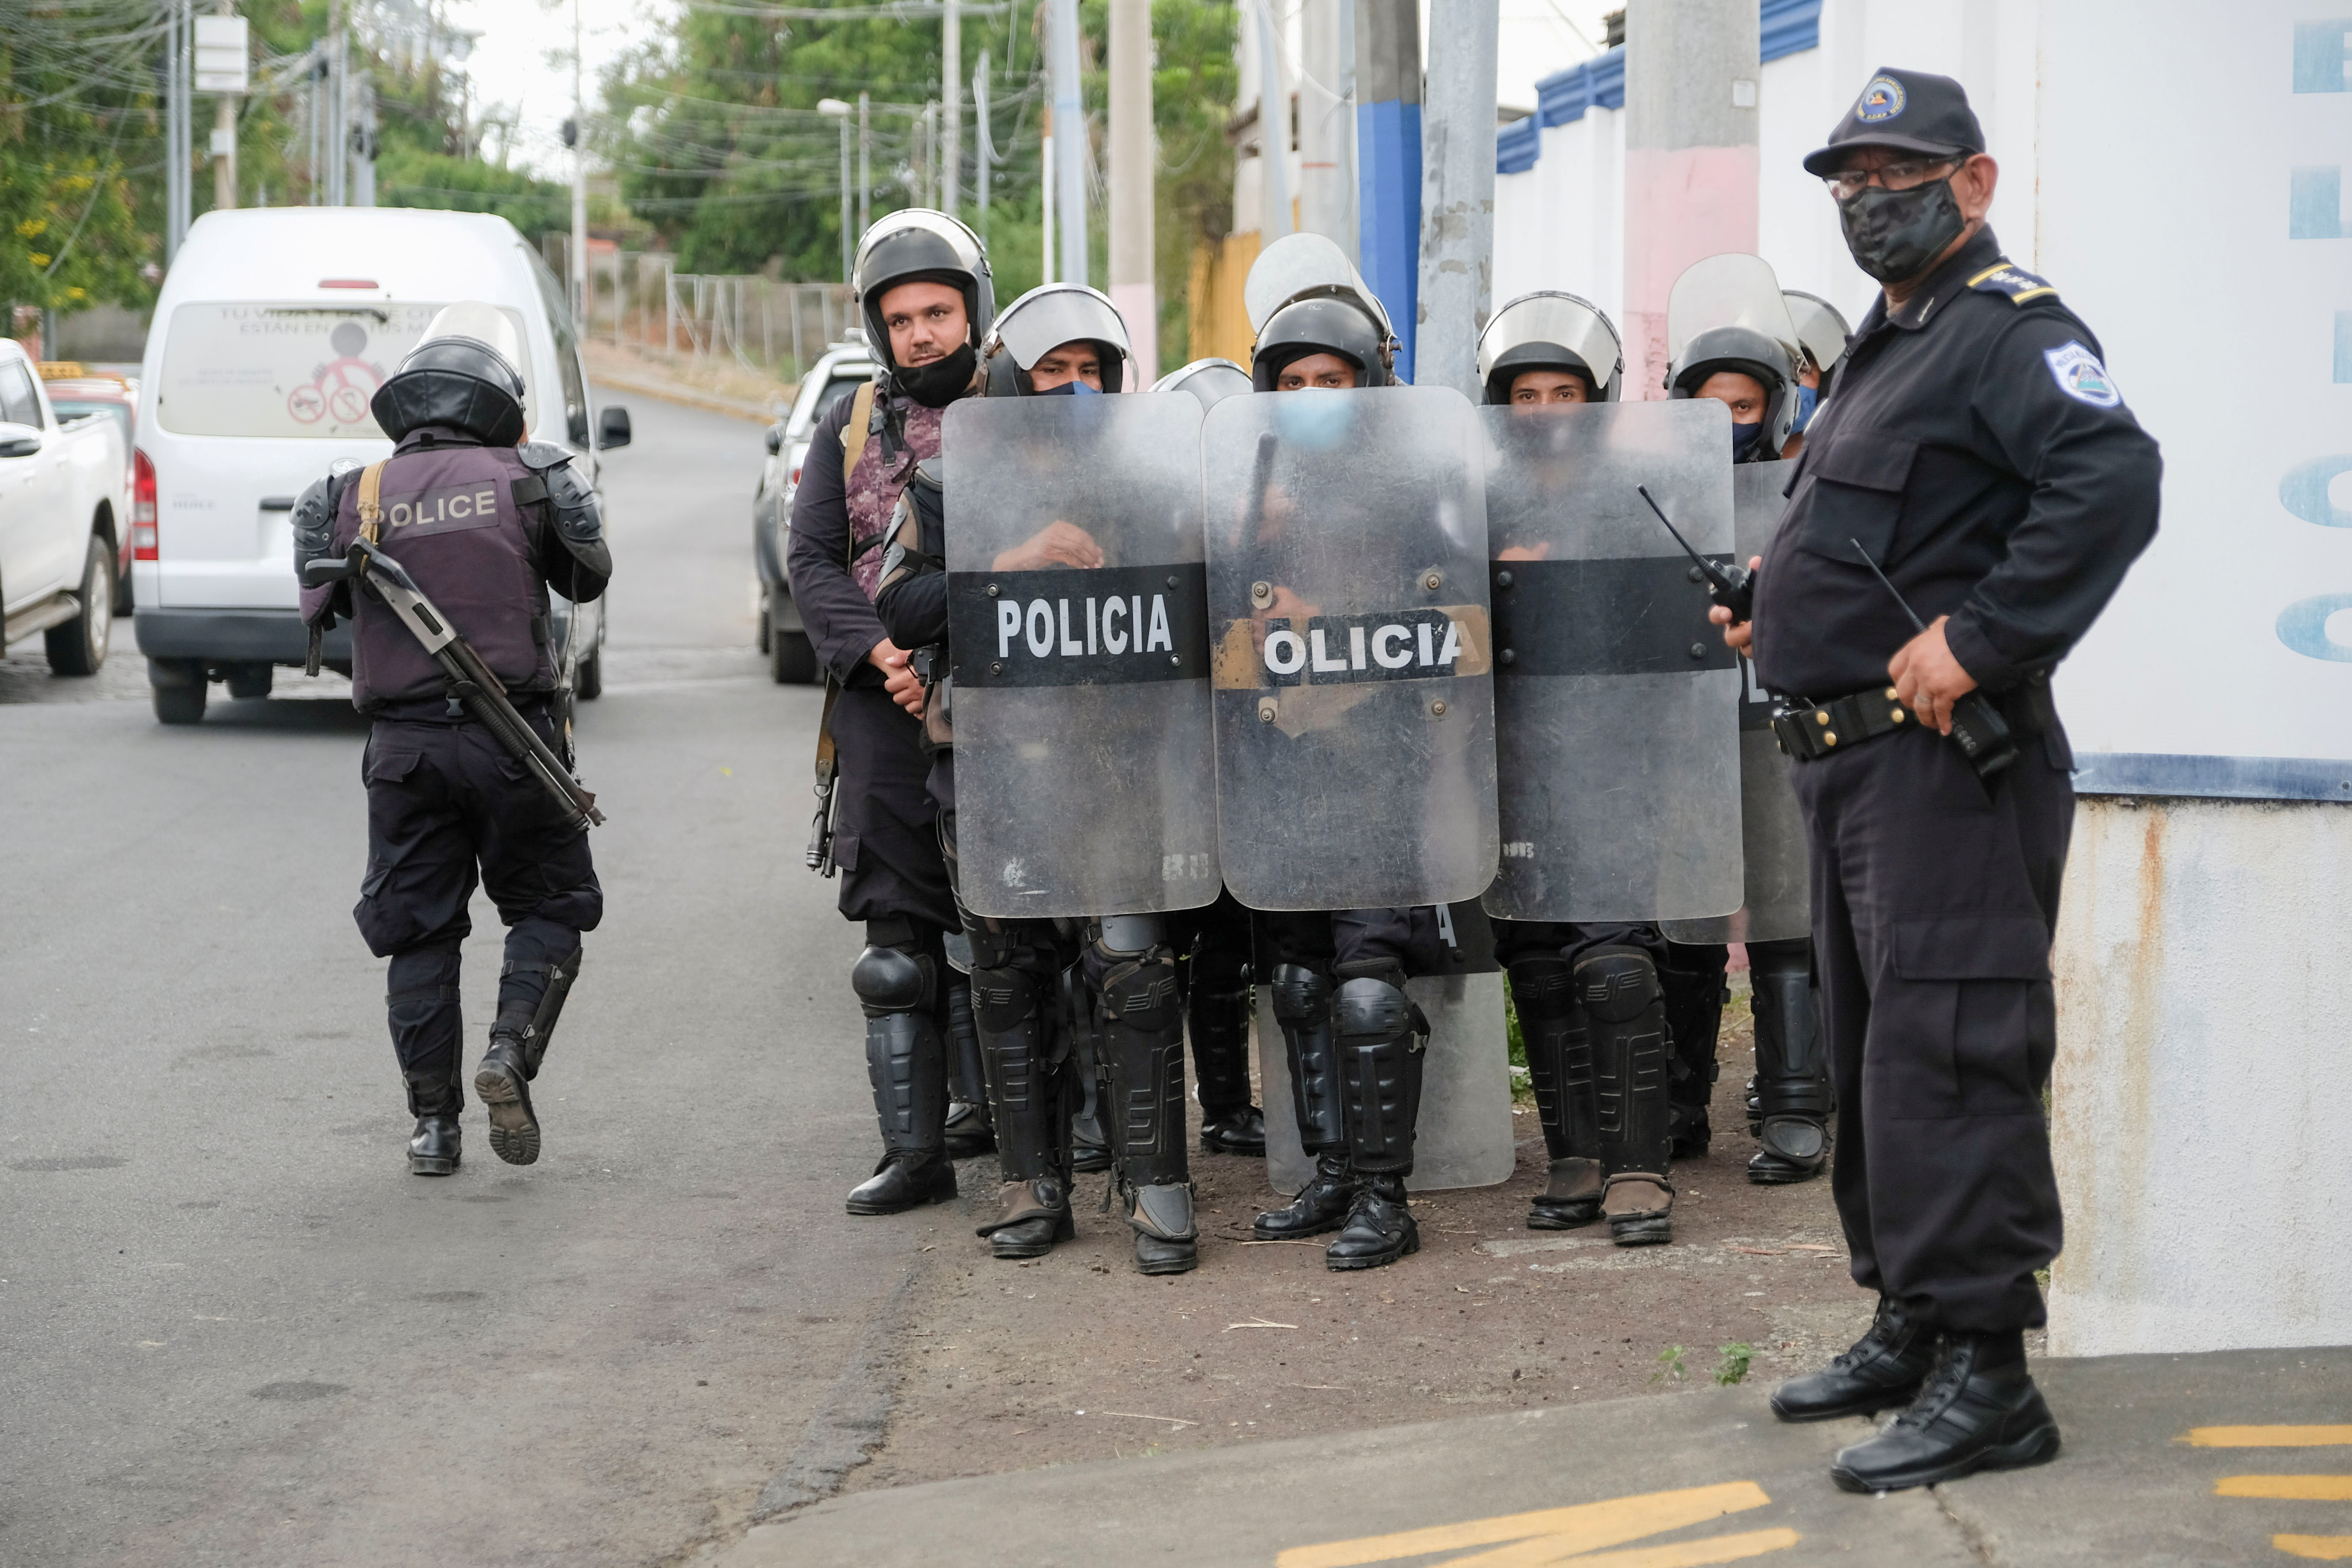 Police officers keep watch outside the Nicaragua Attorney General of the Republic office where Felix Maradiaga, aspiring candidate of the opposition group National Blue and White Unity (UNAB), was summoned by authorities, in Managua, Nicaragua June 8, 2021. REUTERS/Carlos Herrera/File Photo